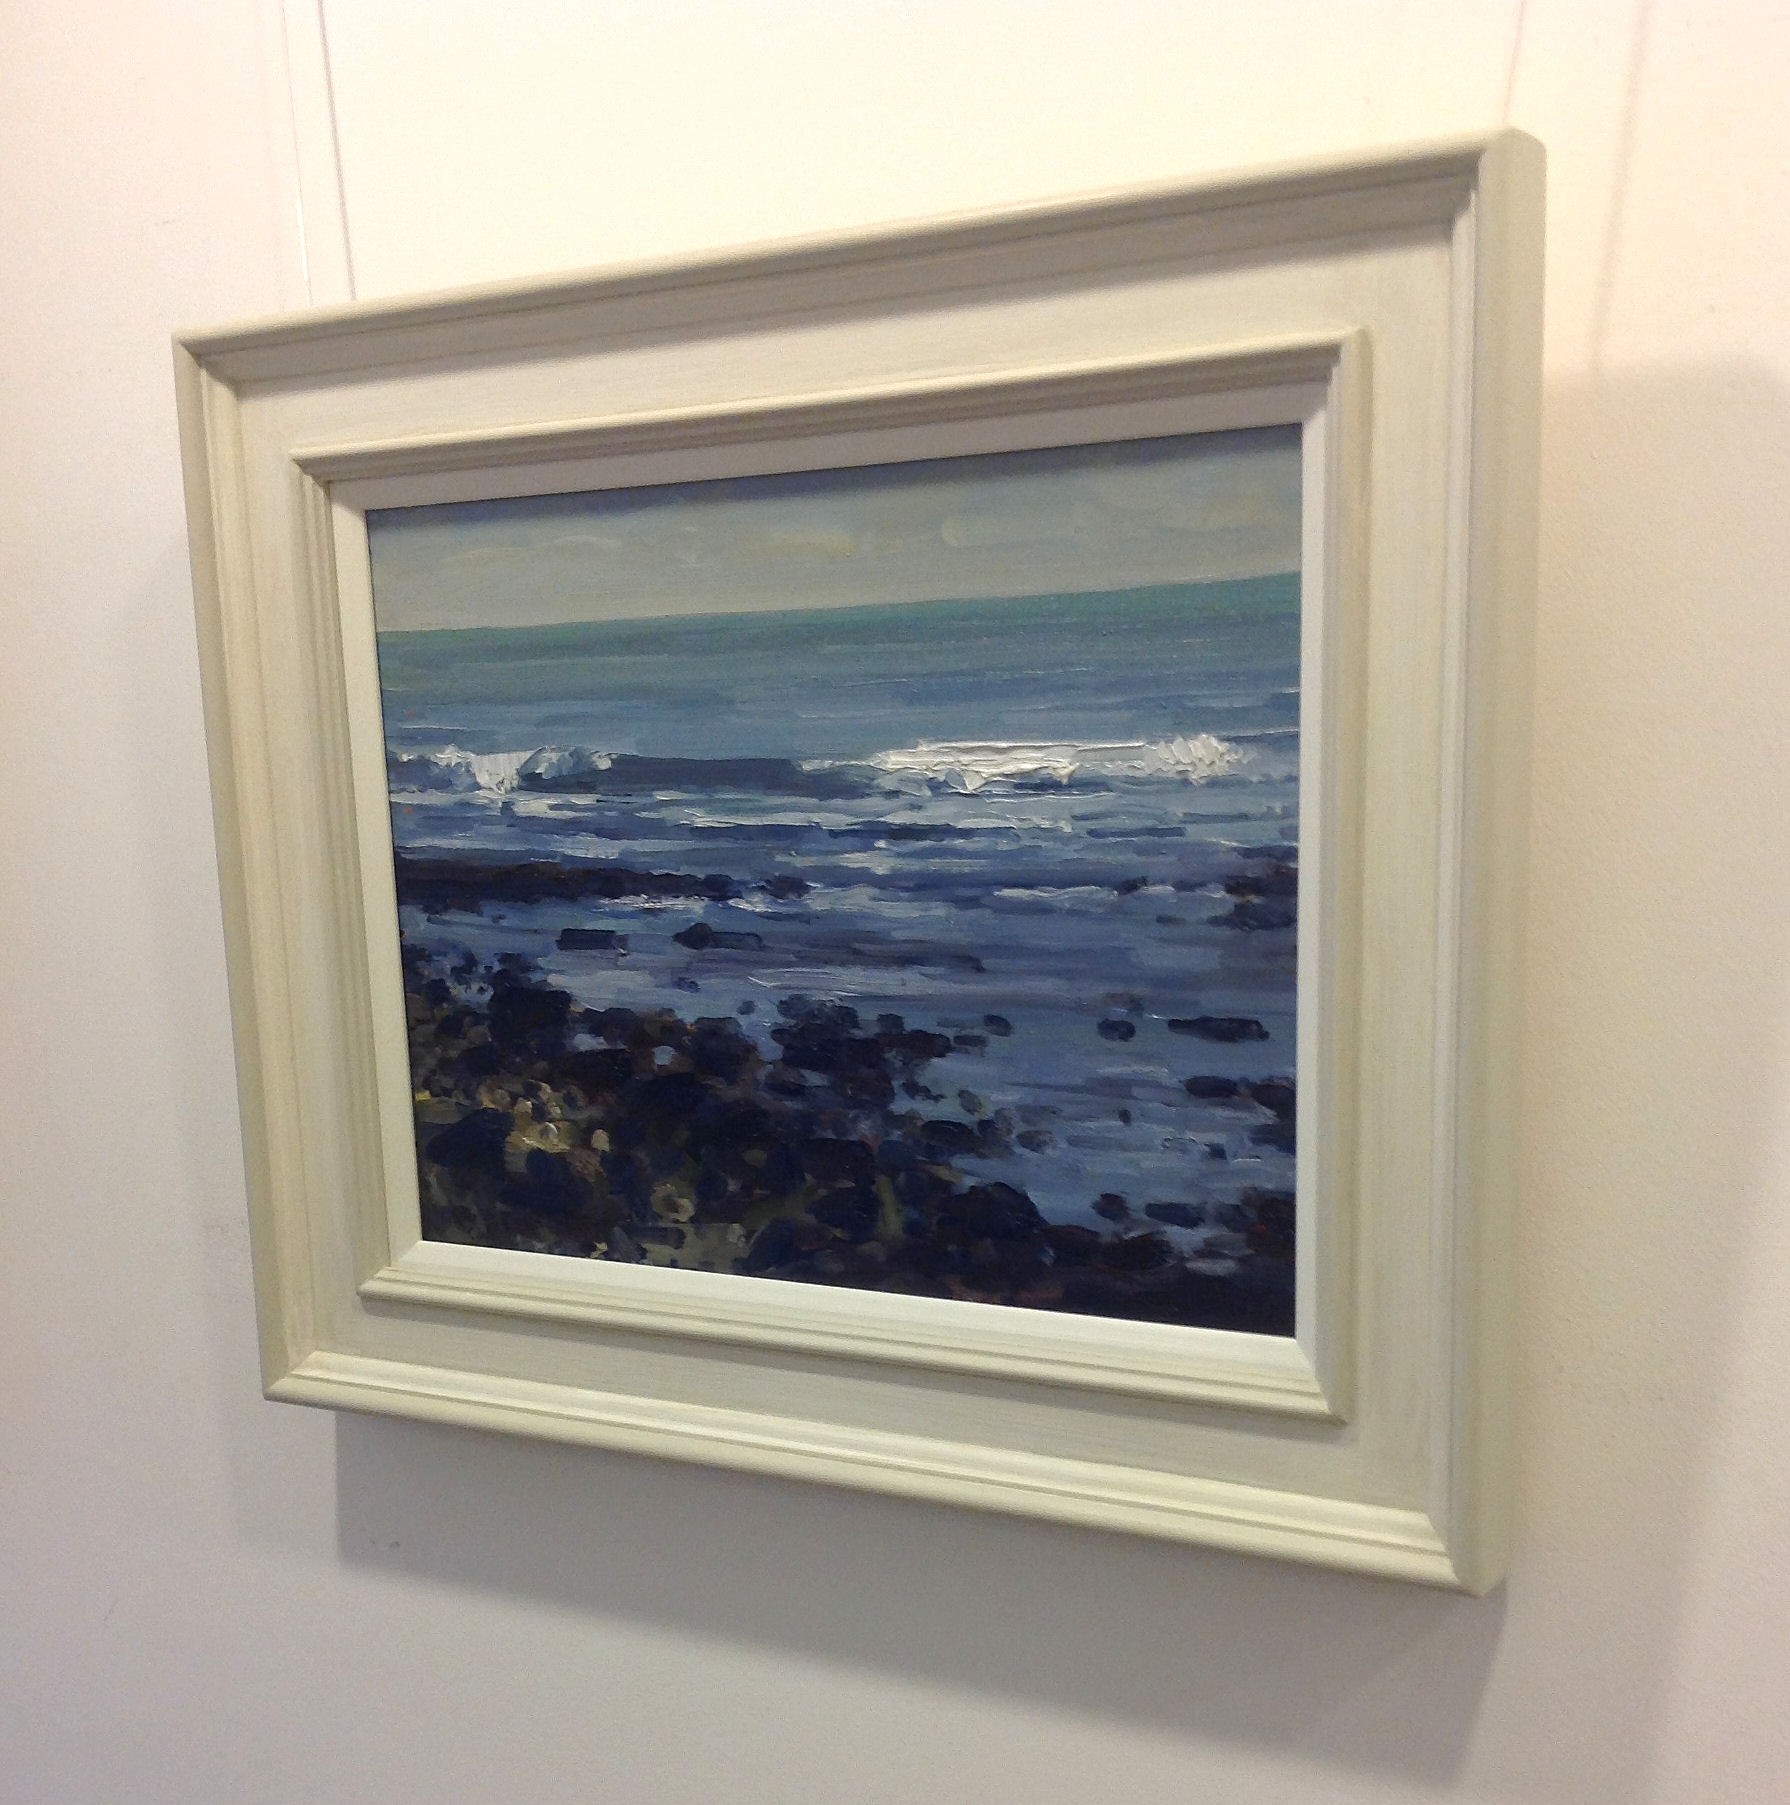 'Breaking waves' by artist Colin Willey